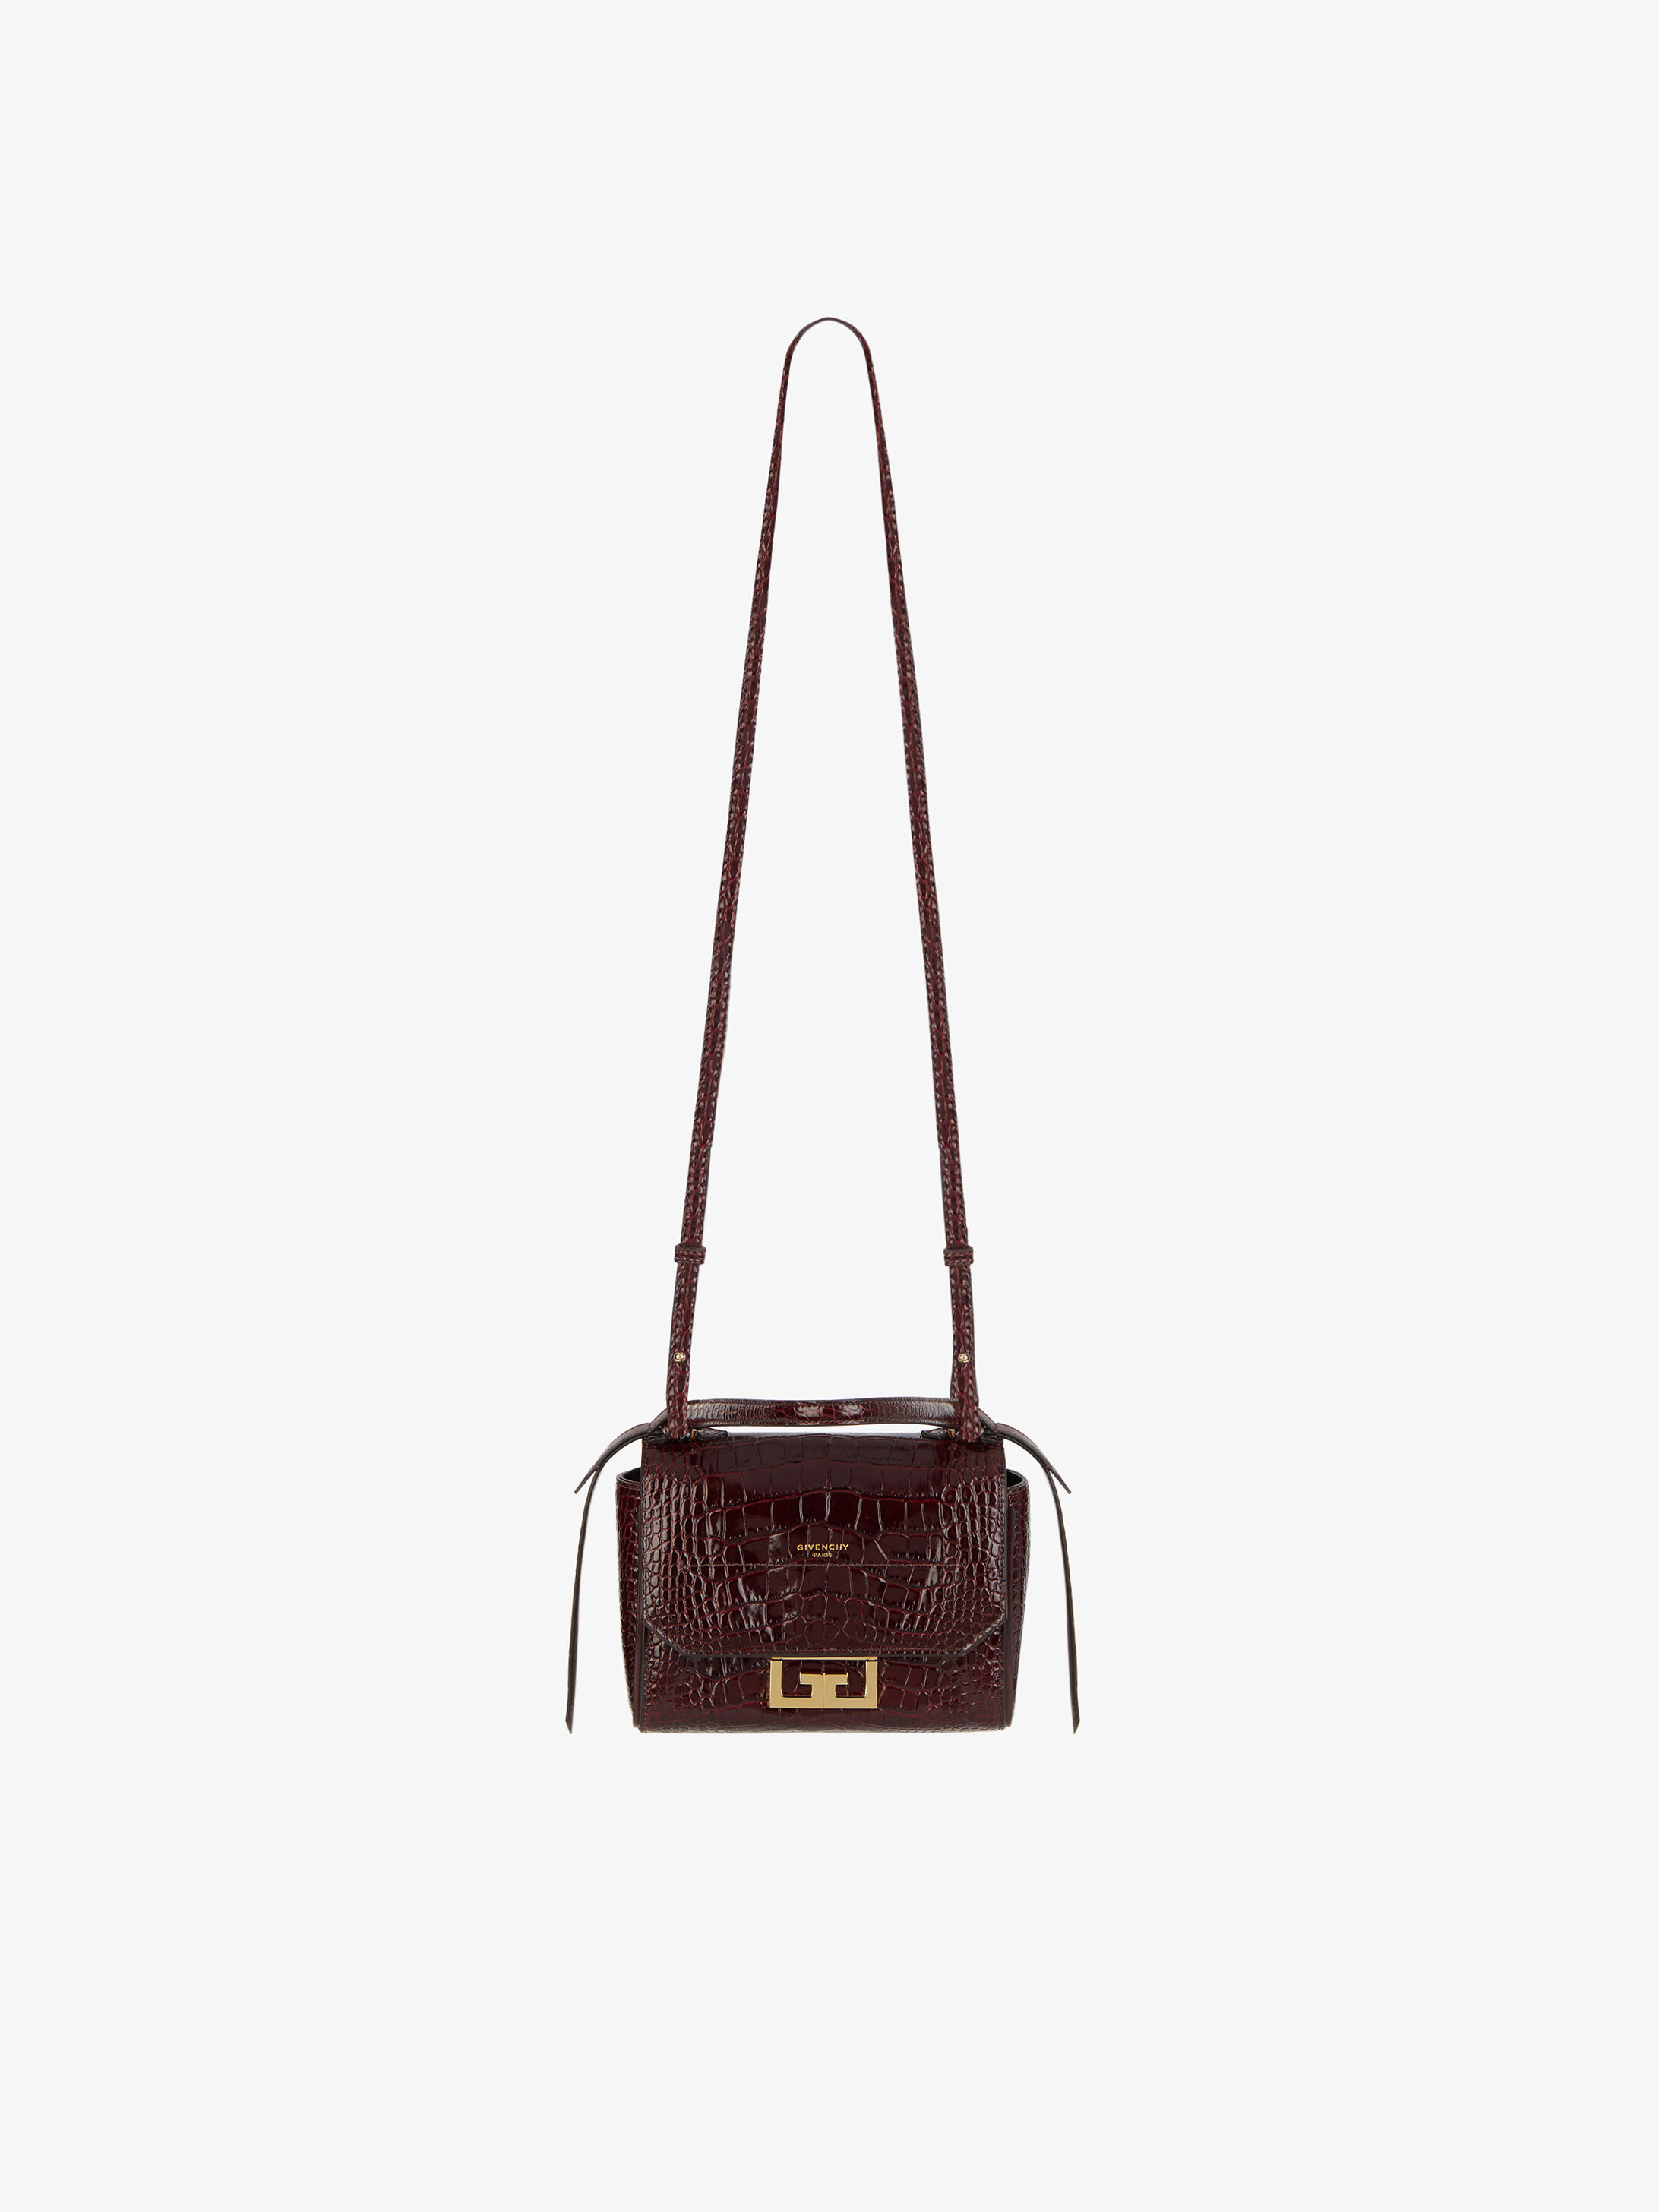 8b801c6a73ff0 Women's Cross-body Bags collection by Givenchy. | GIVENCHY Paris